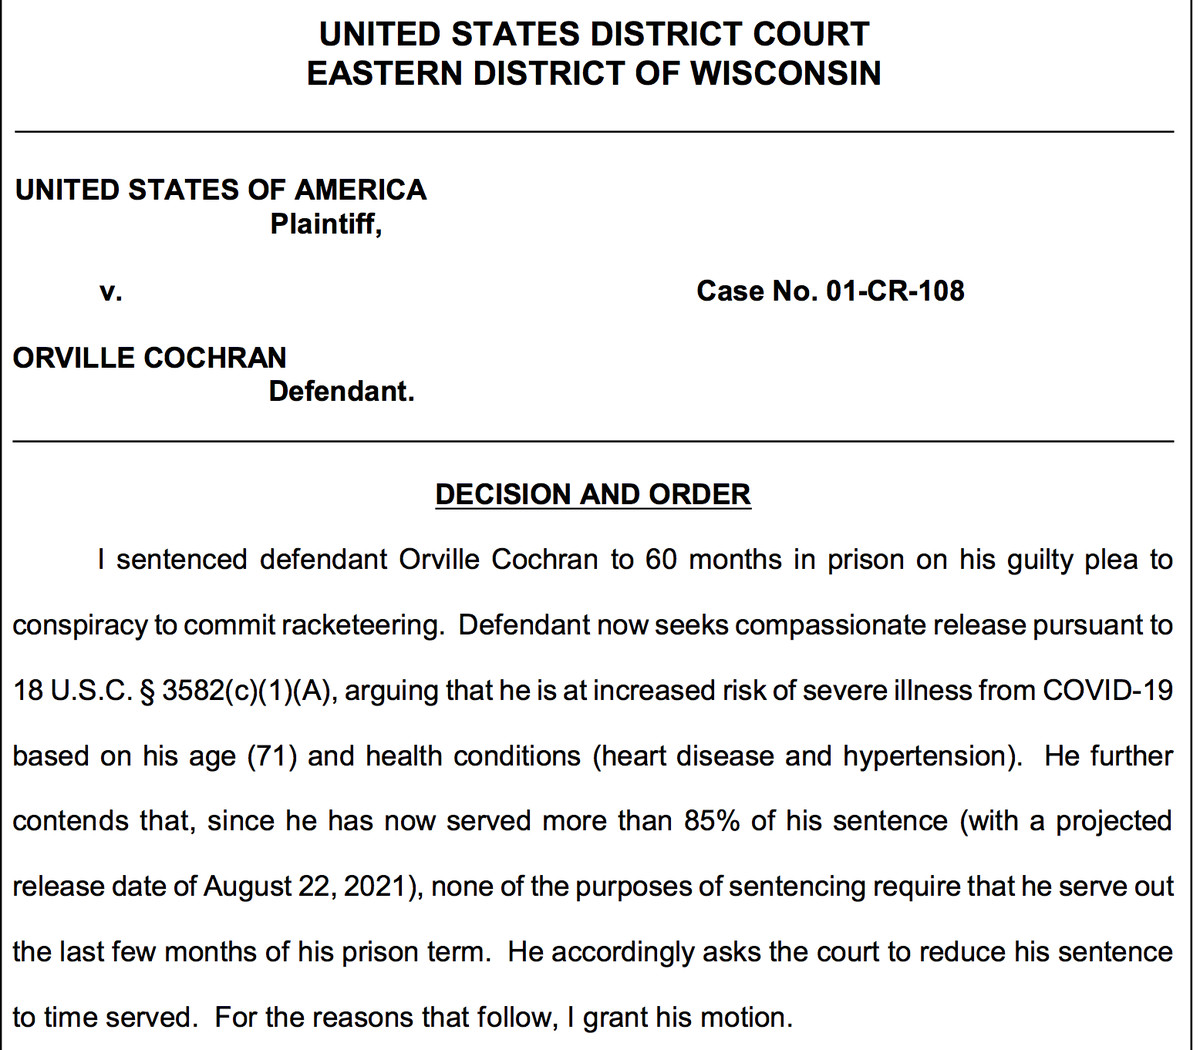 U.S. District Court Judge Lynn Adelman's order allowing ex-Outlaws boss Orville Cochran to leave prison early.